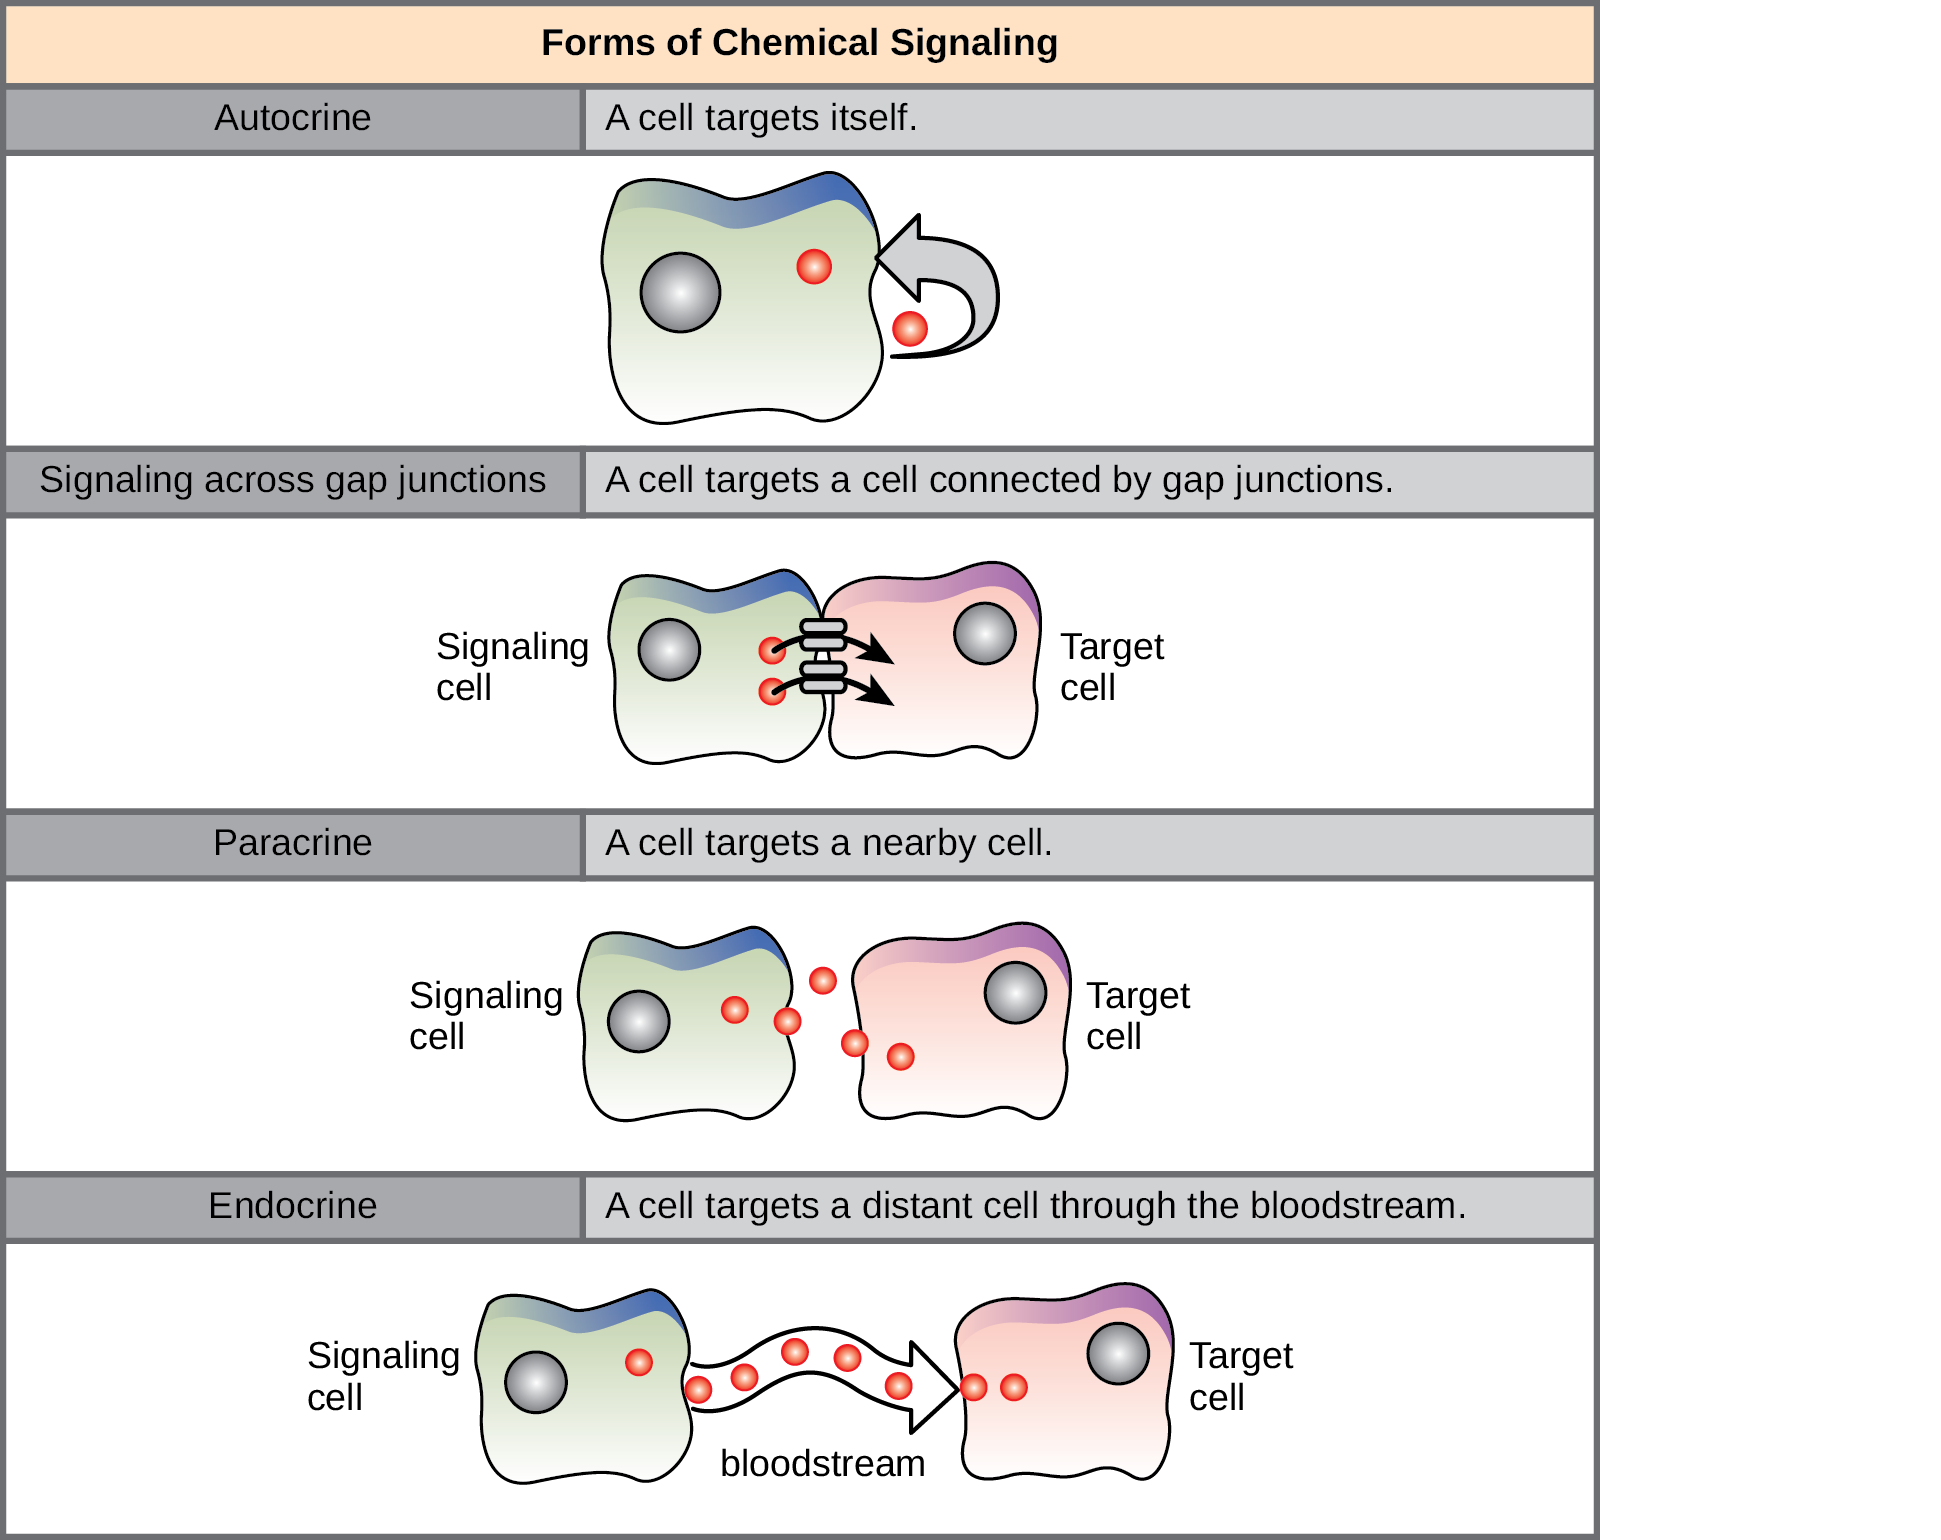 The illustration shows four forms of chemical signaling. In autocrine signaling, a cell targets itself. In signaling across a gap junction, a cell targets a cell connected via gap junctions. In paracrine signaling, a cell targets a nearby cell. In endocrine signaling, a cell targets a distant cell via the bloodstream